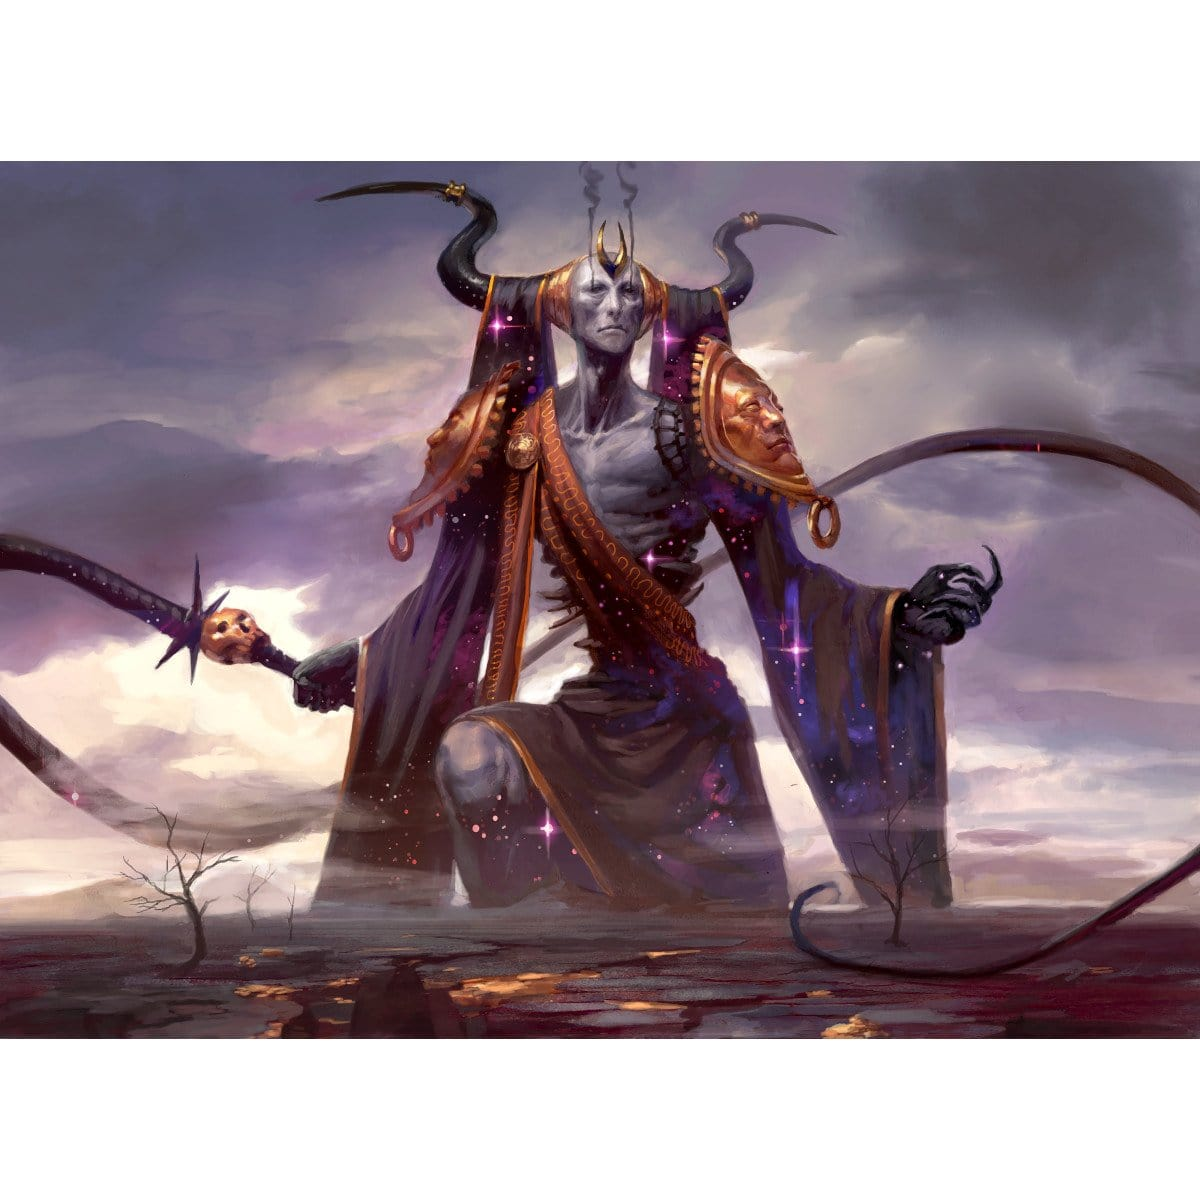 Erebos, God of the Dead Print - Print - Original Magic Art - Accessories for Magic the Gathering and other card games